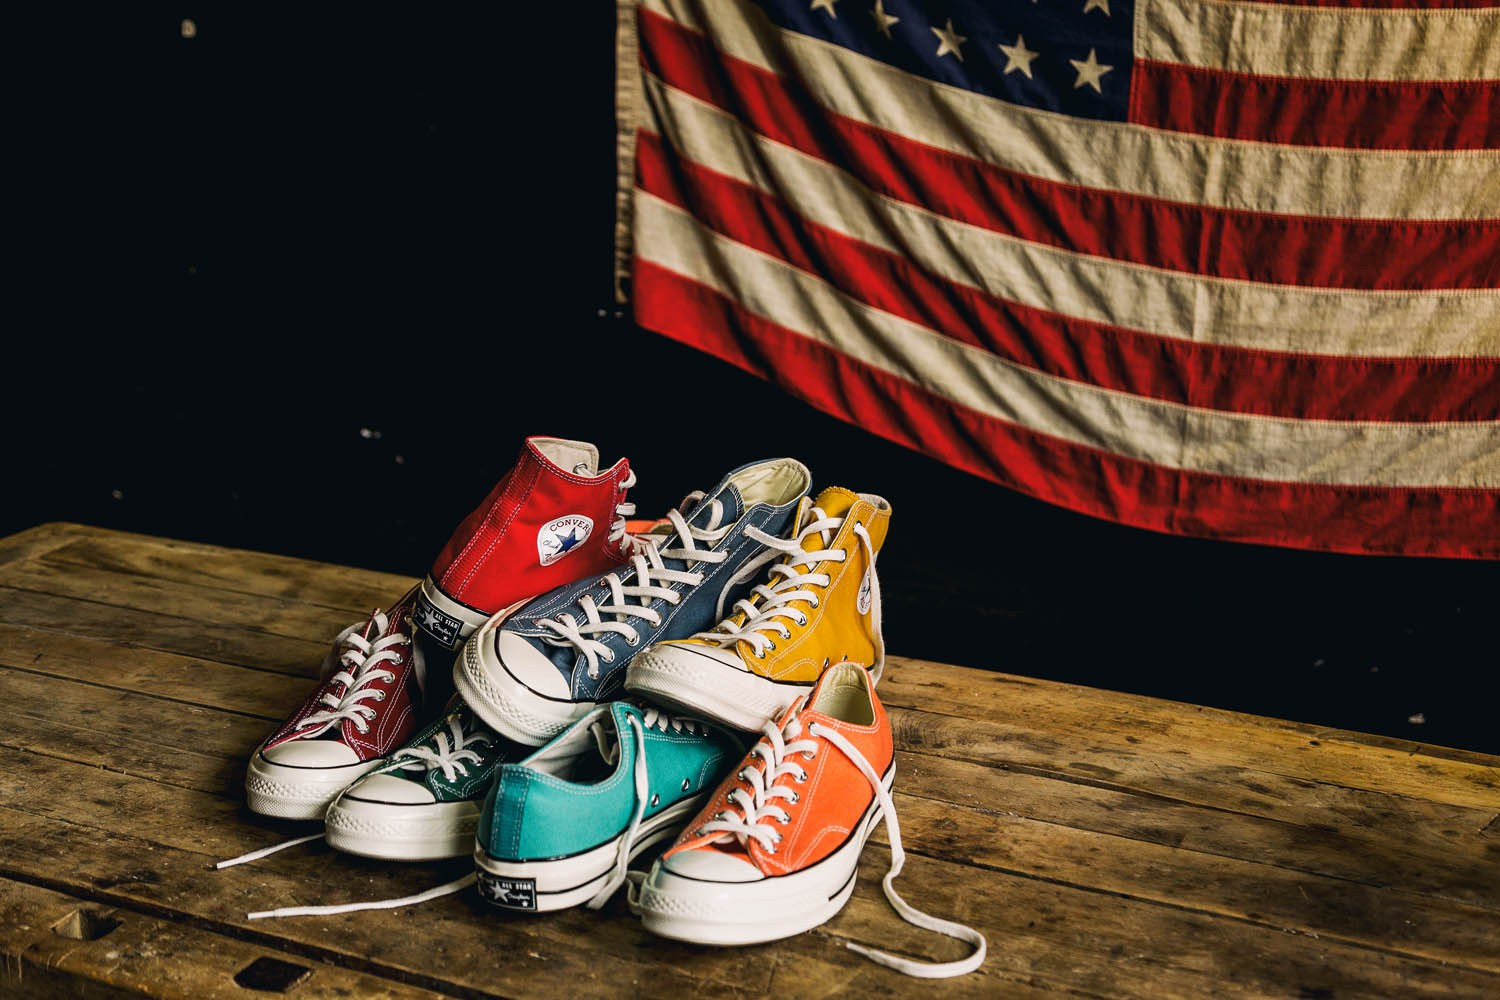 converse-shows-its-colors-with-its-latest-chuck-taylor-all-star-70s-release-1